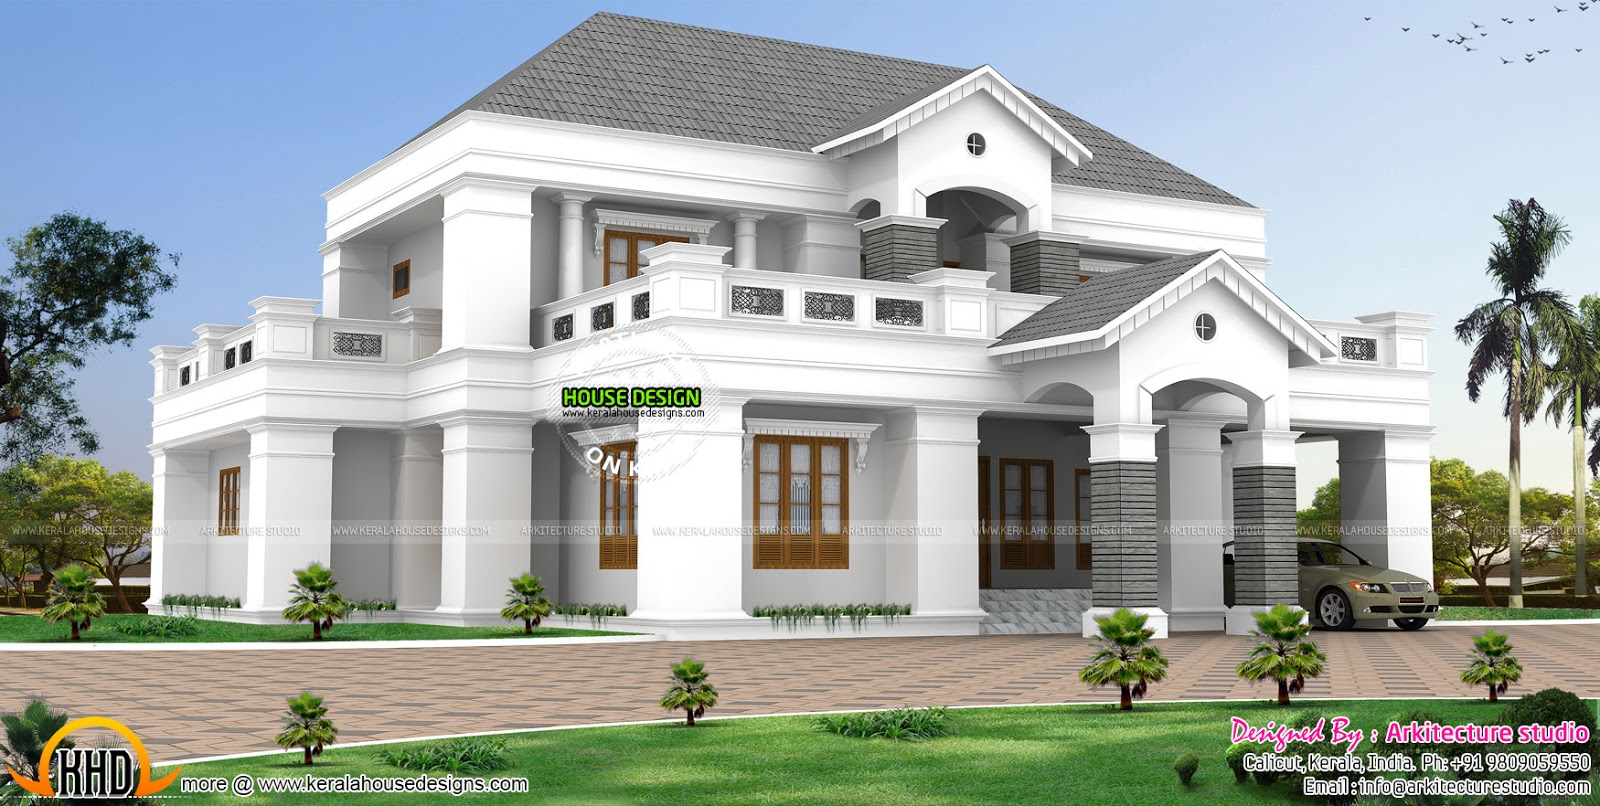 Luxurious pillar type home design kerala home design and for Studio house designs